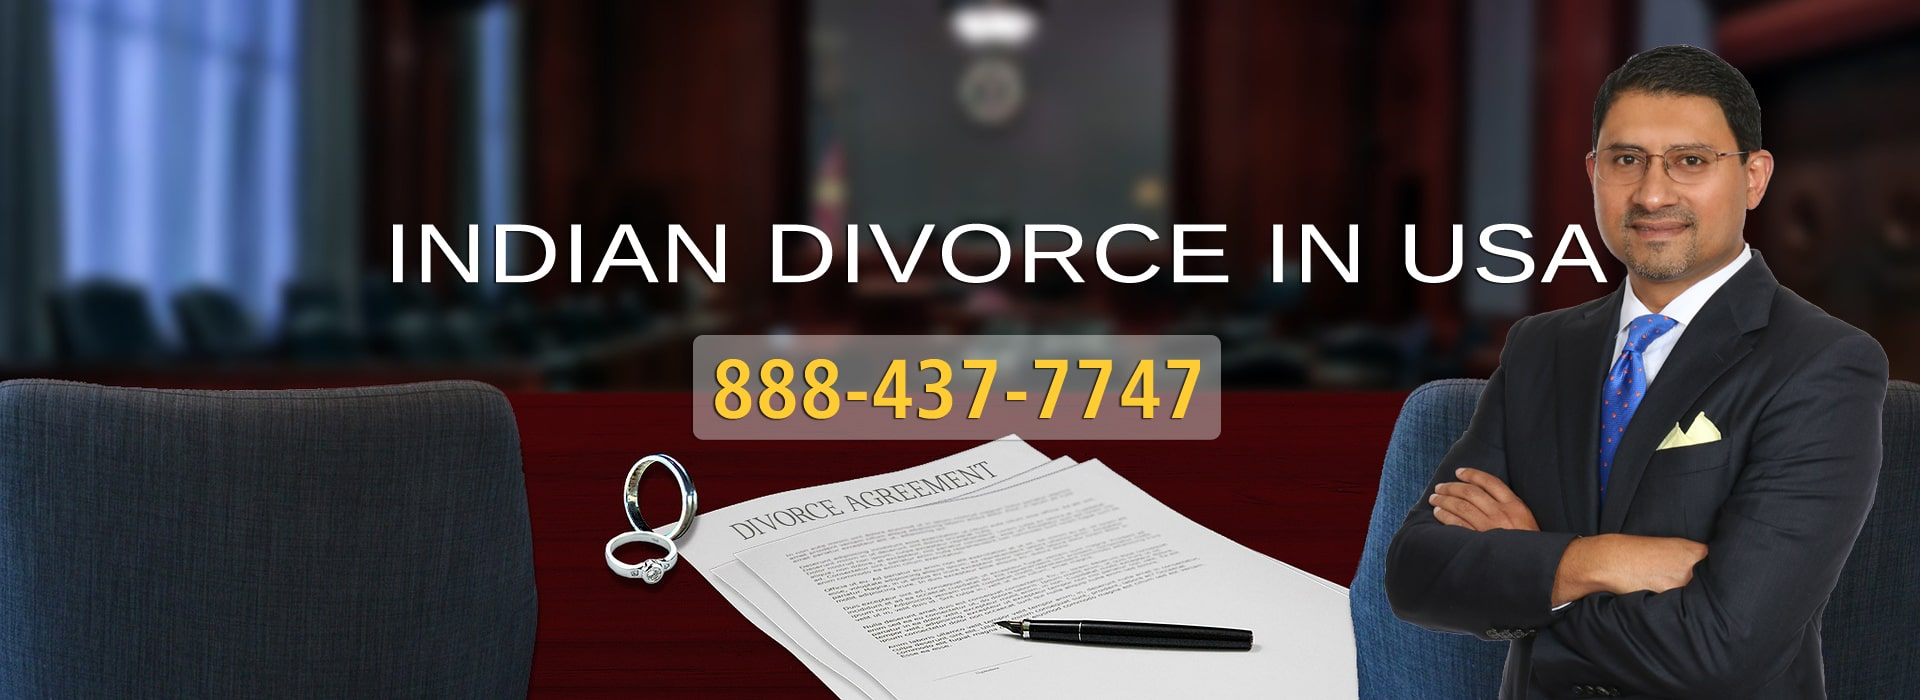 US Divorce Valid In India Married In India Divorce in USA